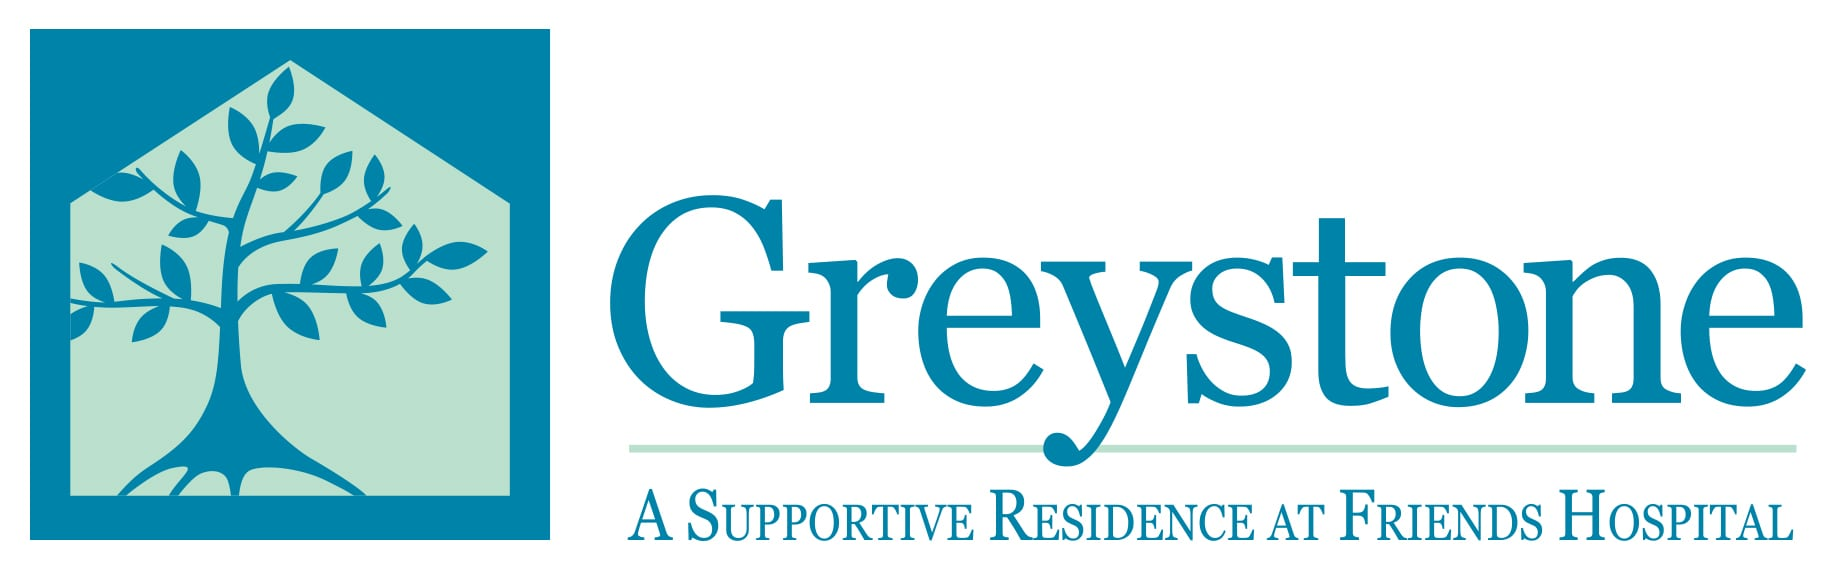 Helping residents move toward recovery, greater independence and an enhanced quality of life